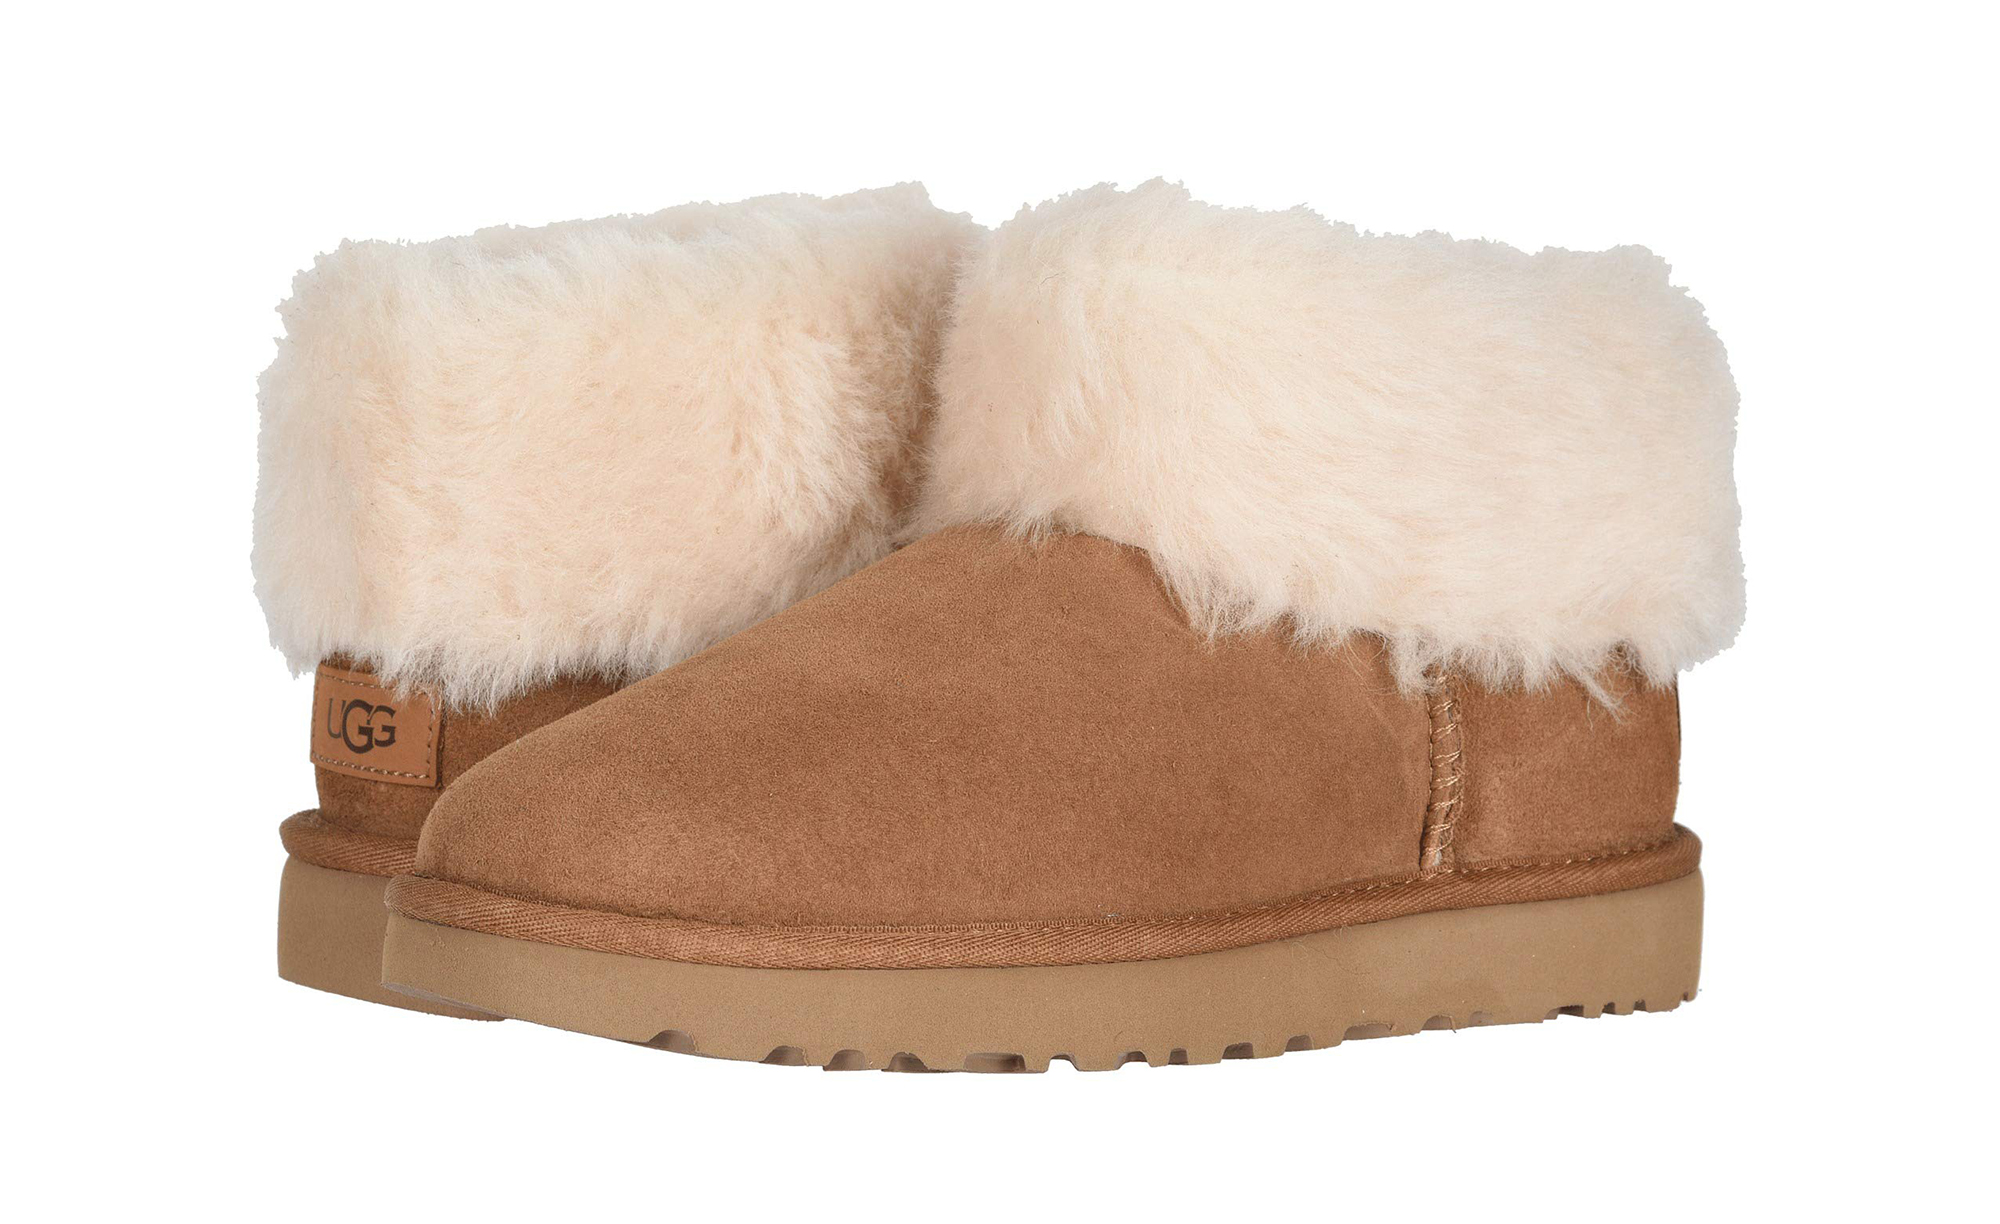 Early Cyber Week Deal: These Staple UGG